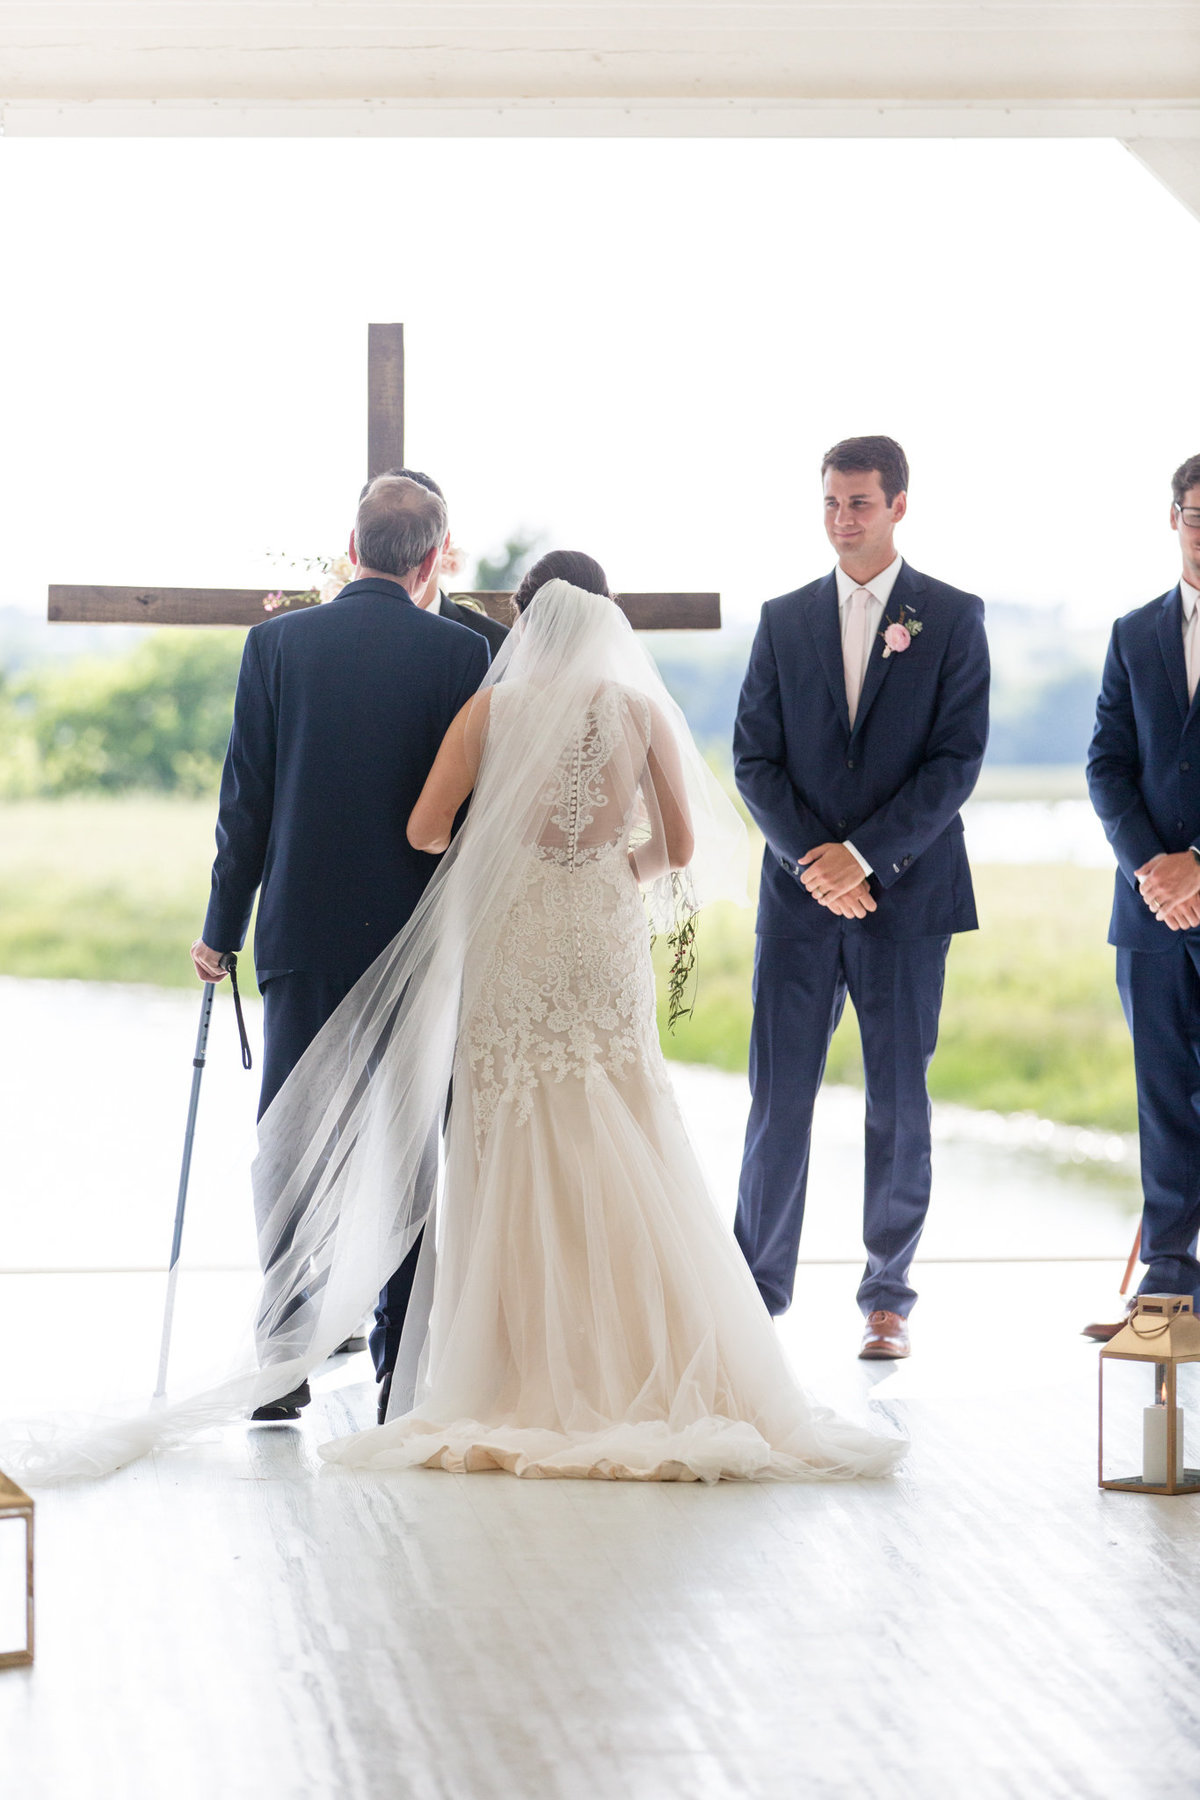 Grand Ivory Wedding| Dallas, Texas | DFW Wedding Photographer | Sami Kathryn Photography-72